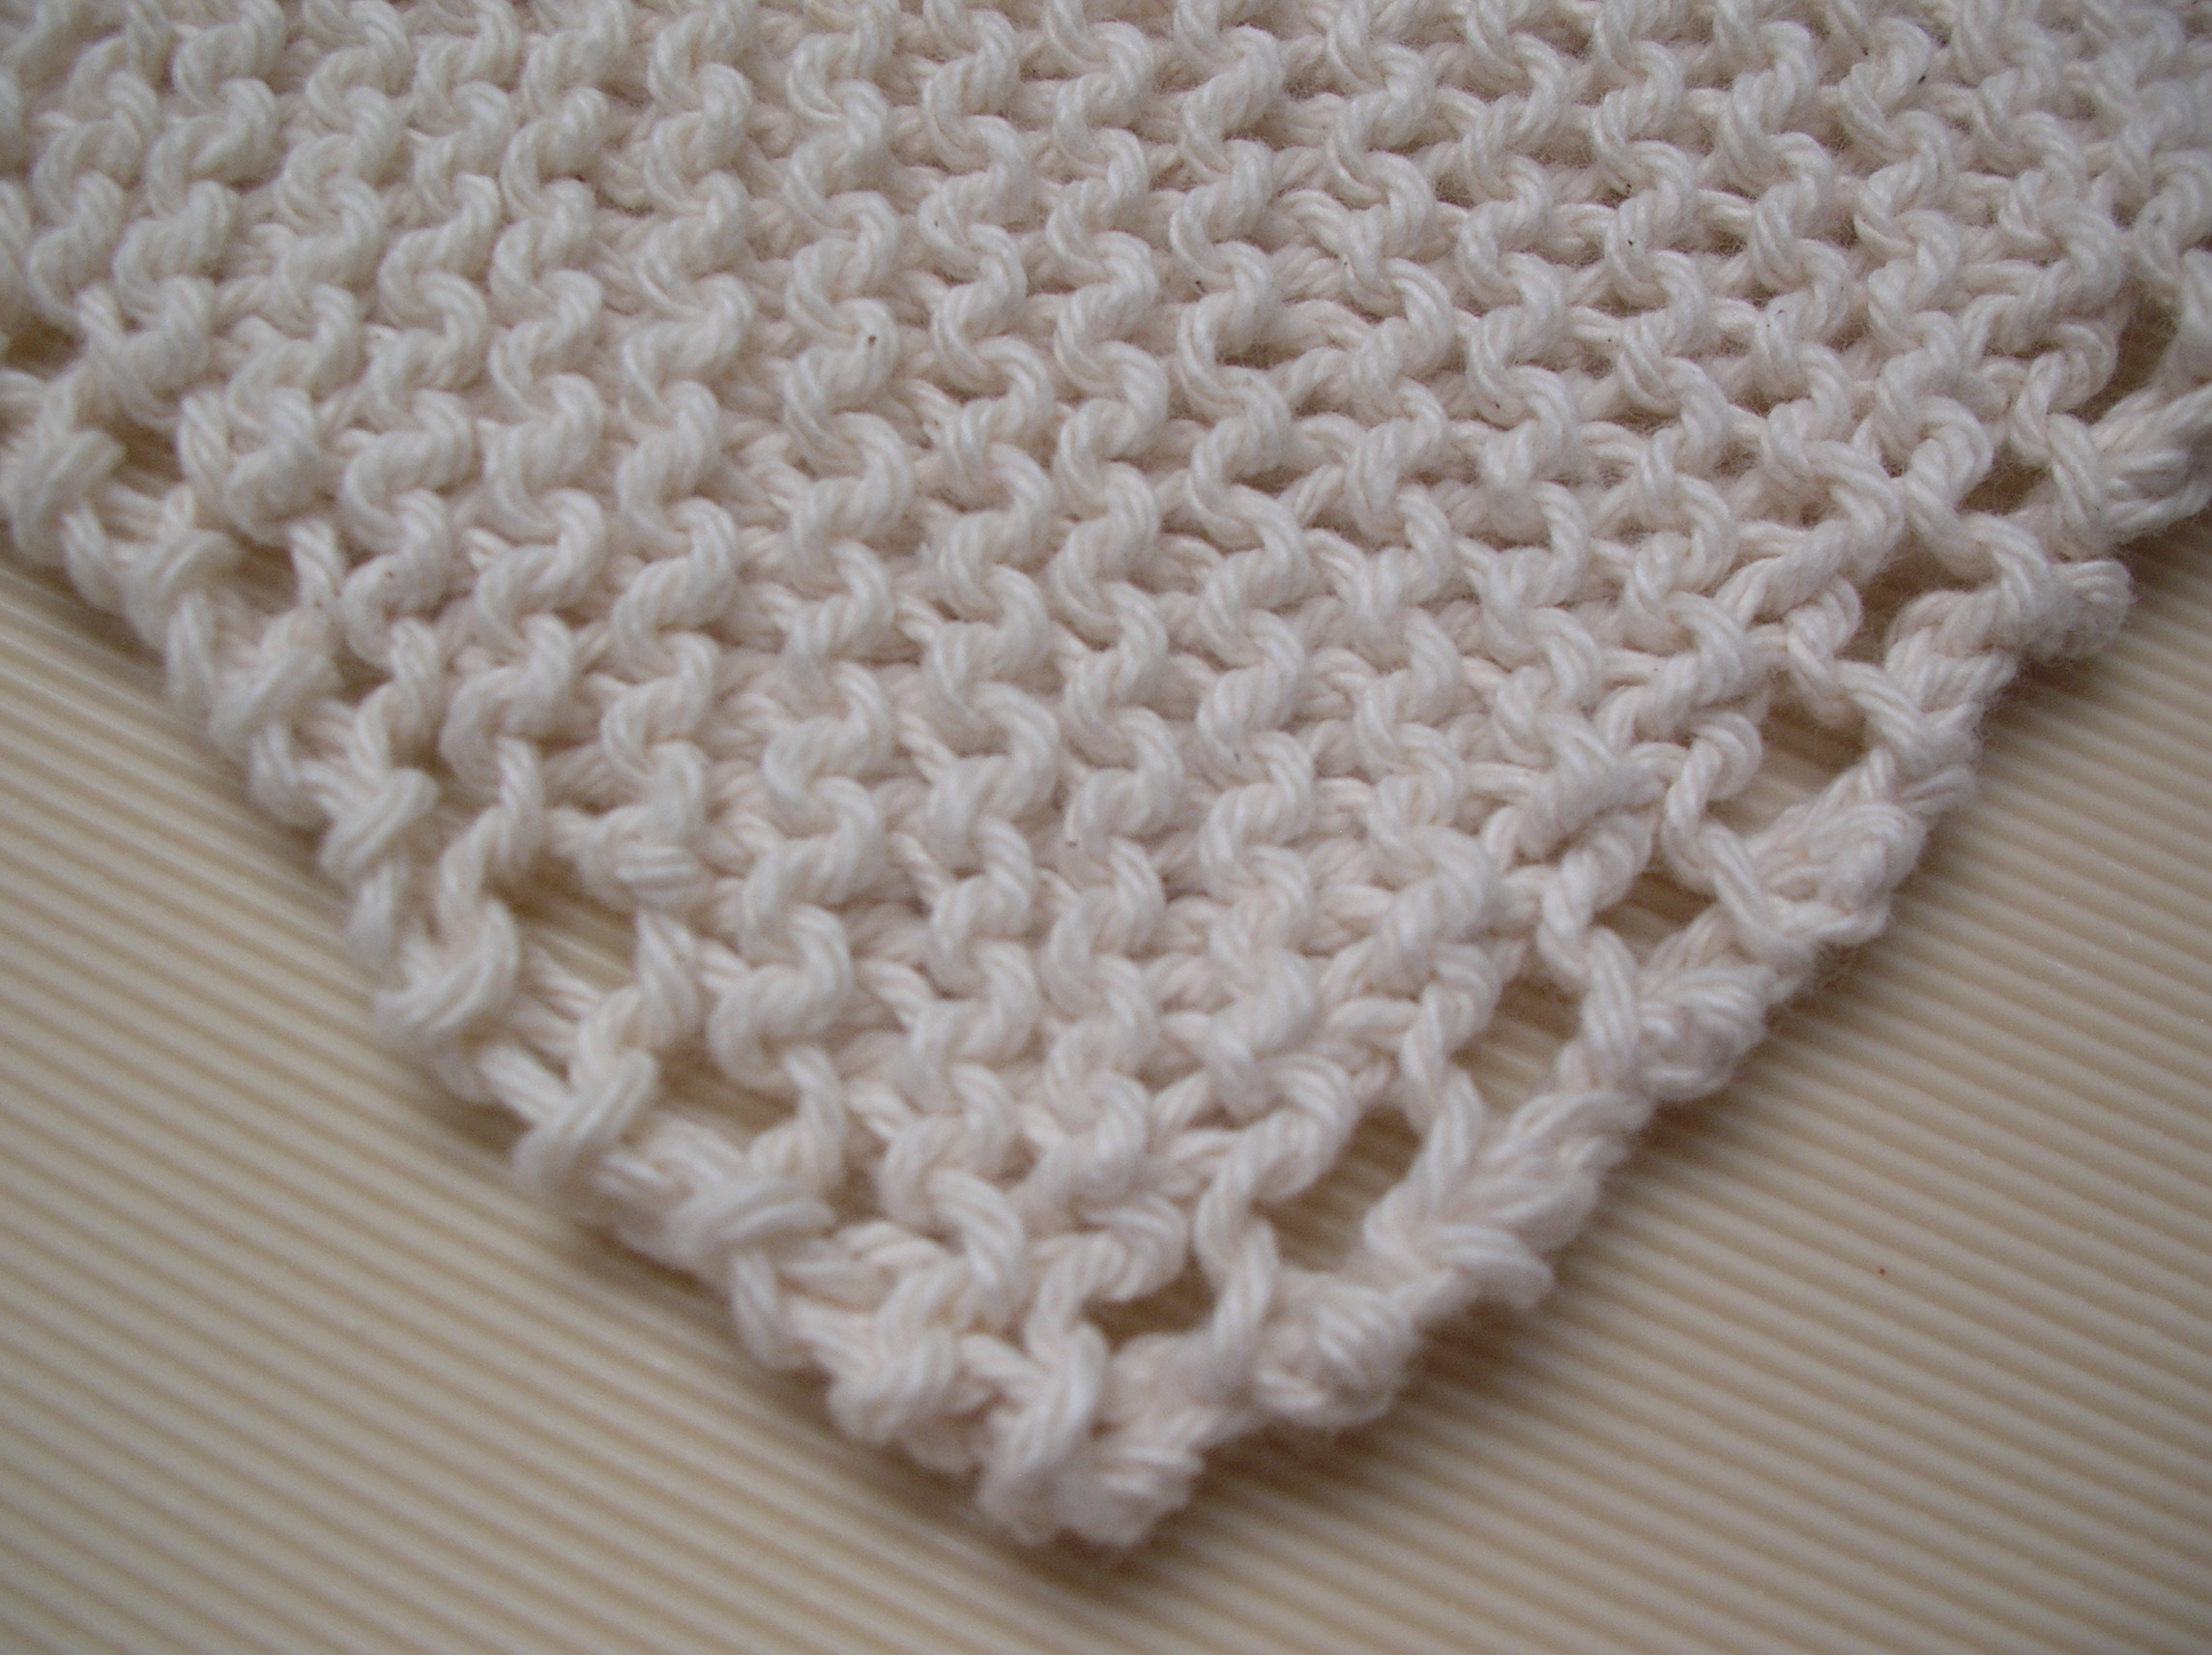 Crochet Patterns With Cotton Yarn : 34 New Crochet Dishcloth Patterns For Free Patterns Hub